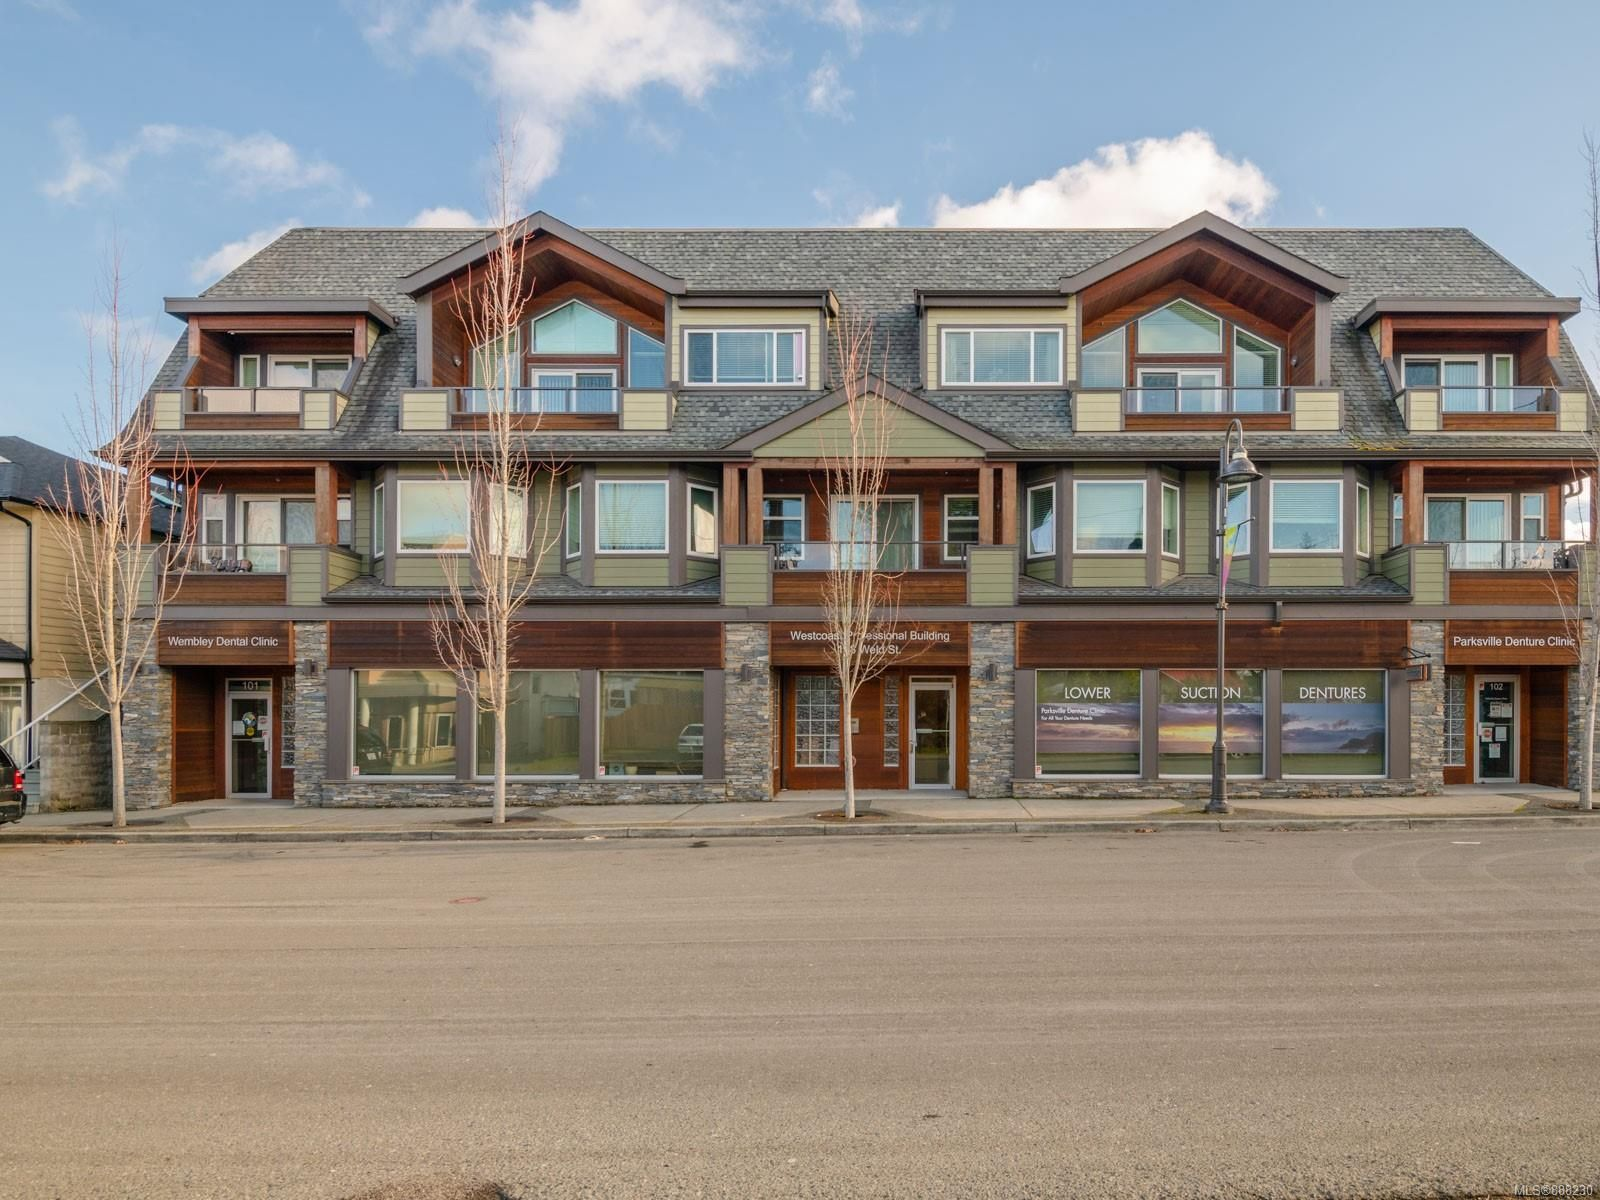 Main Photo: 148 Weld St in : PQ Parksville Multi Family for sale (Parksville/Qualicum)  : MLS®# 888230